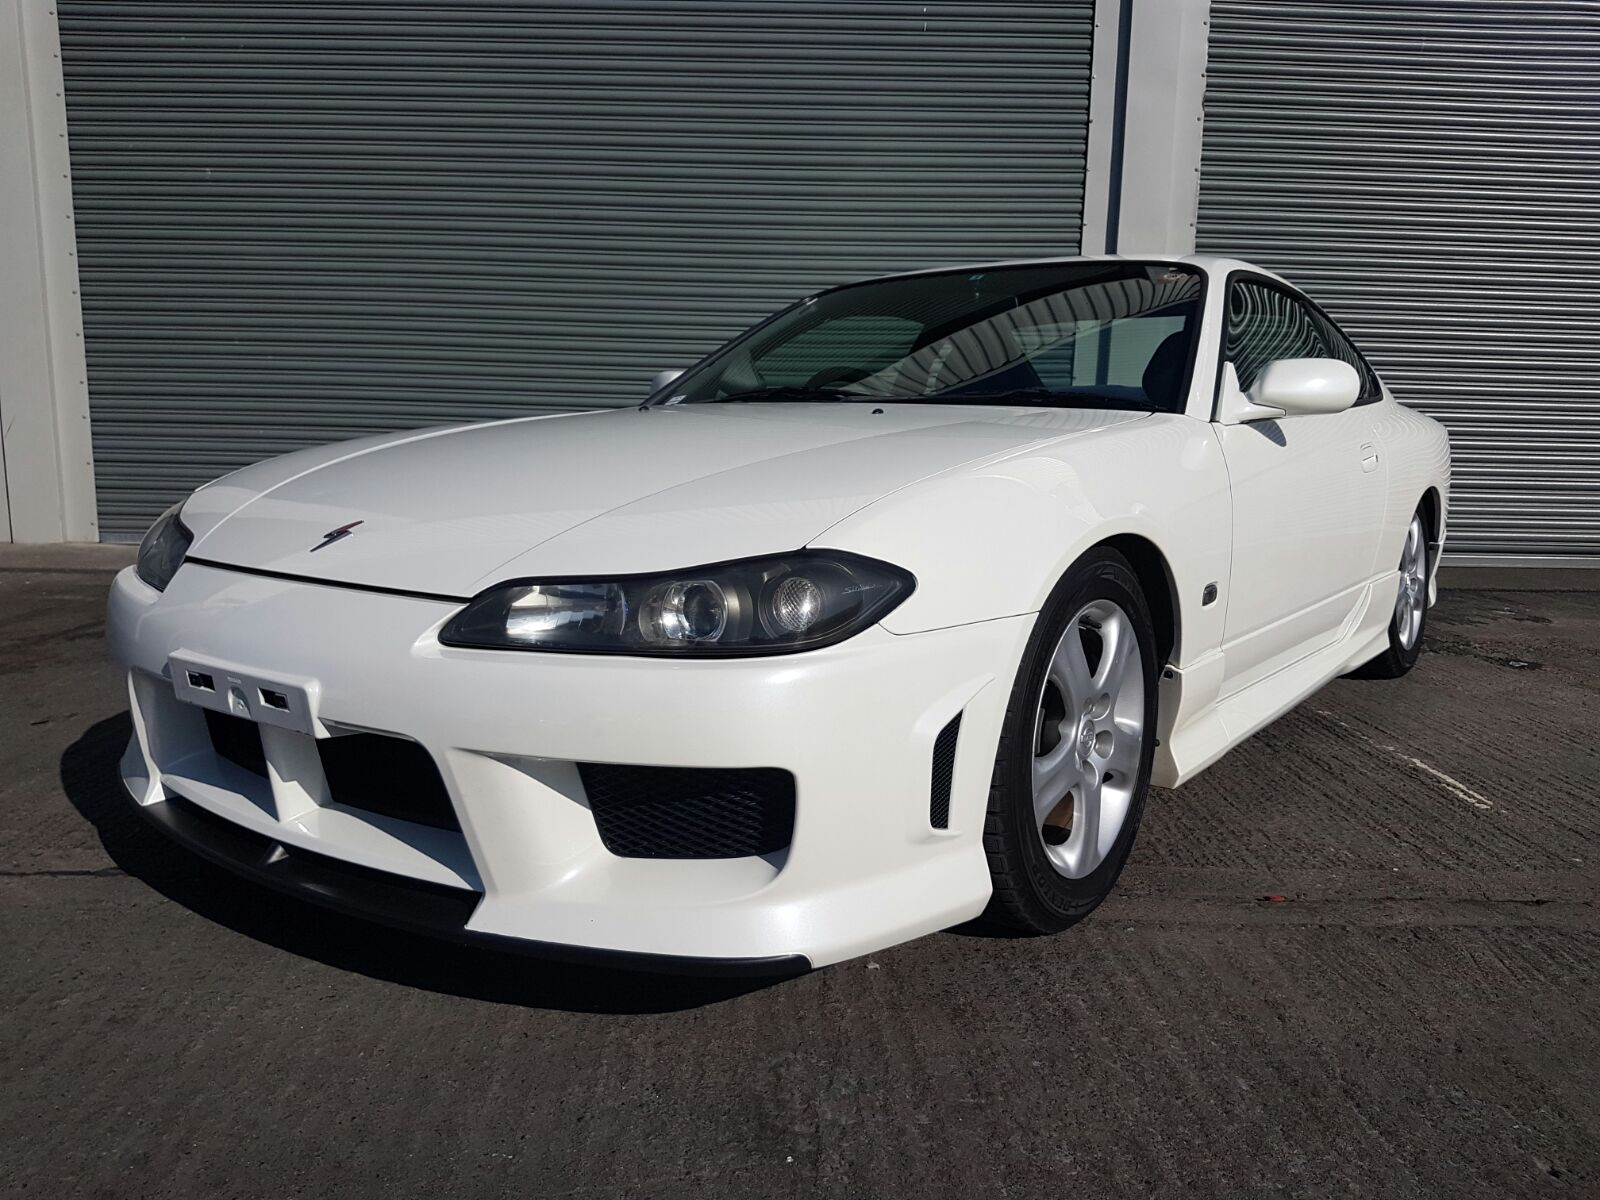 For Sale S15 Nissan Silvia Aero Model Driftworks Forum